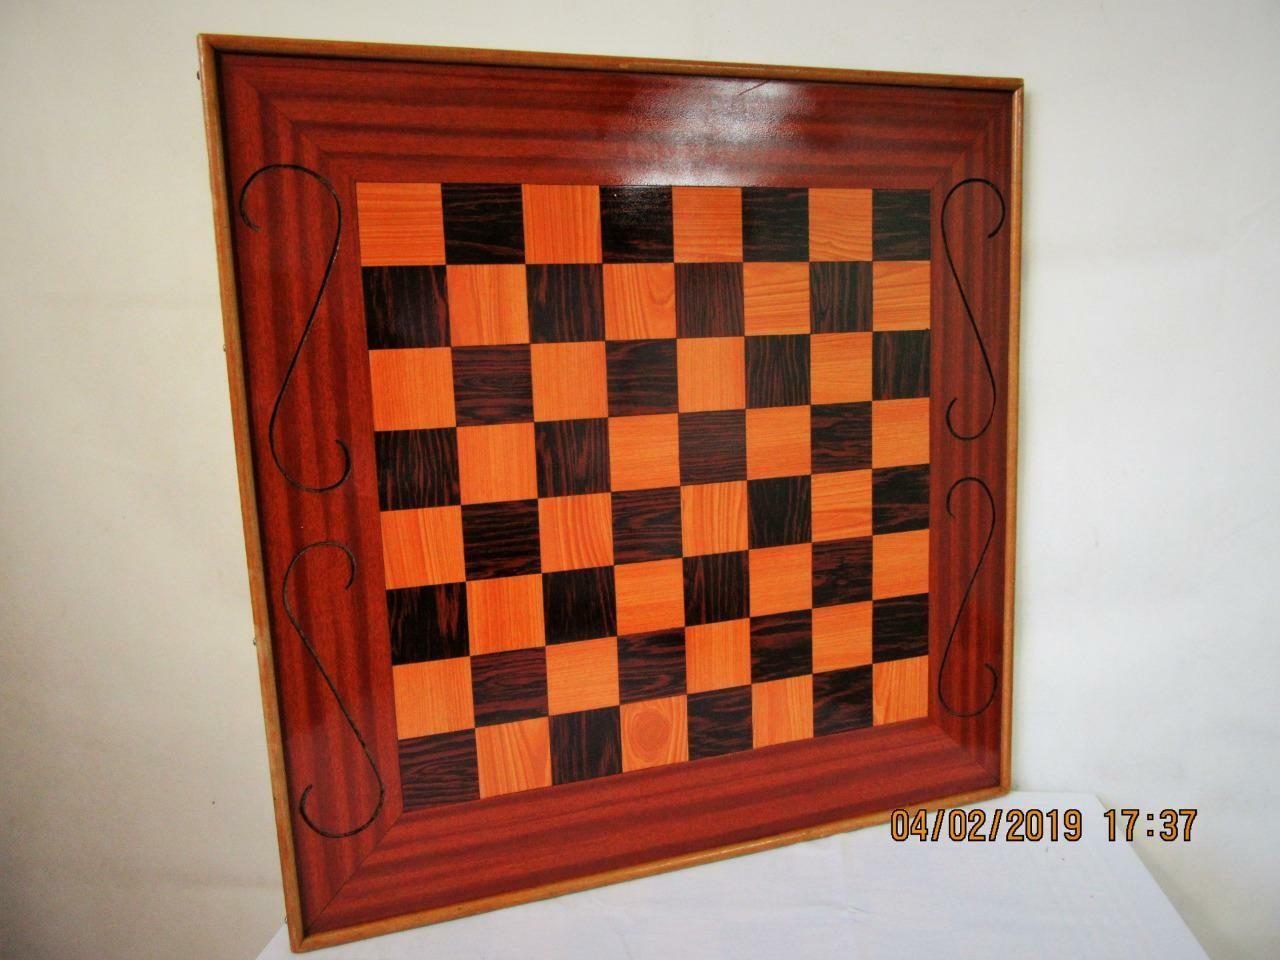 VINTAGE HOME MADE X LARGE CHESS  BOARD 22.5 inches SQUARES OF 51 mm NO PIECES